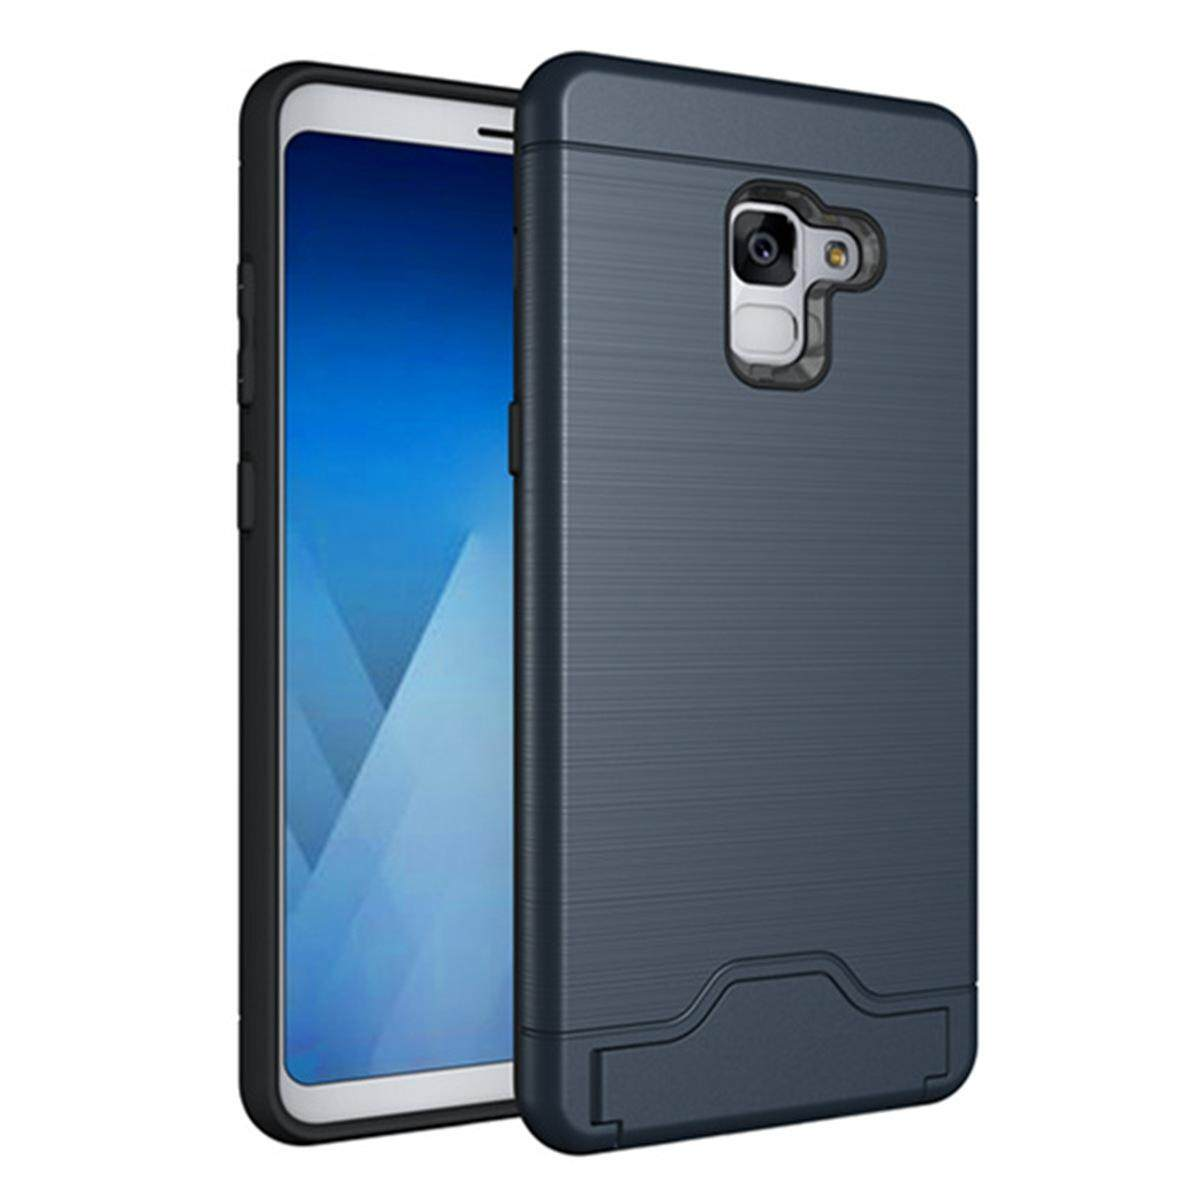 Hình ảnh for Samsung Galaxy A8+(2018) & A8 Plus(2018) Case [Hidden Card Slot] Hard PC + TPU Hybrid Back Armor Case Cover, with Cryptic Card Storage Slot, Skidproof, Minimalist - intl